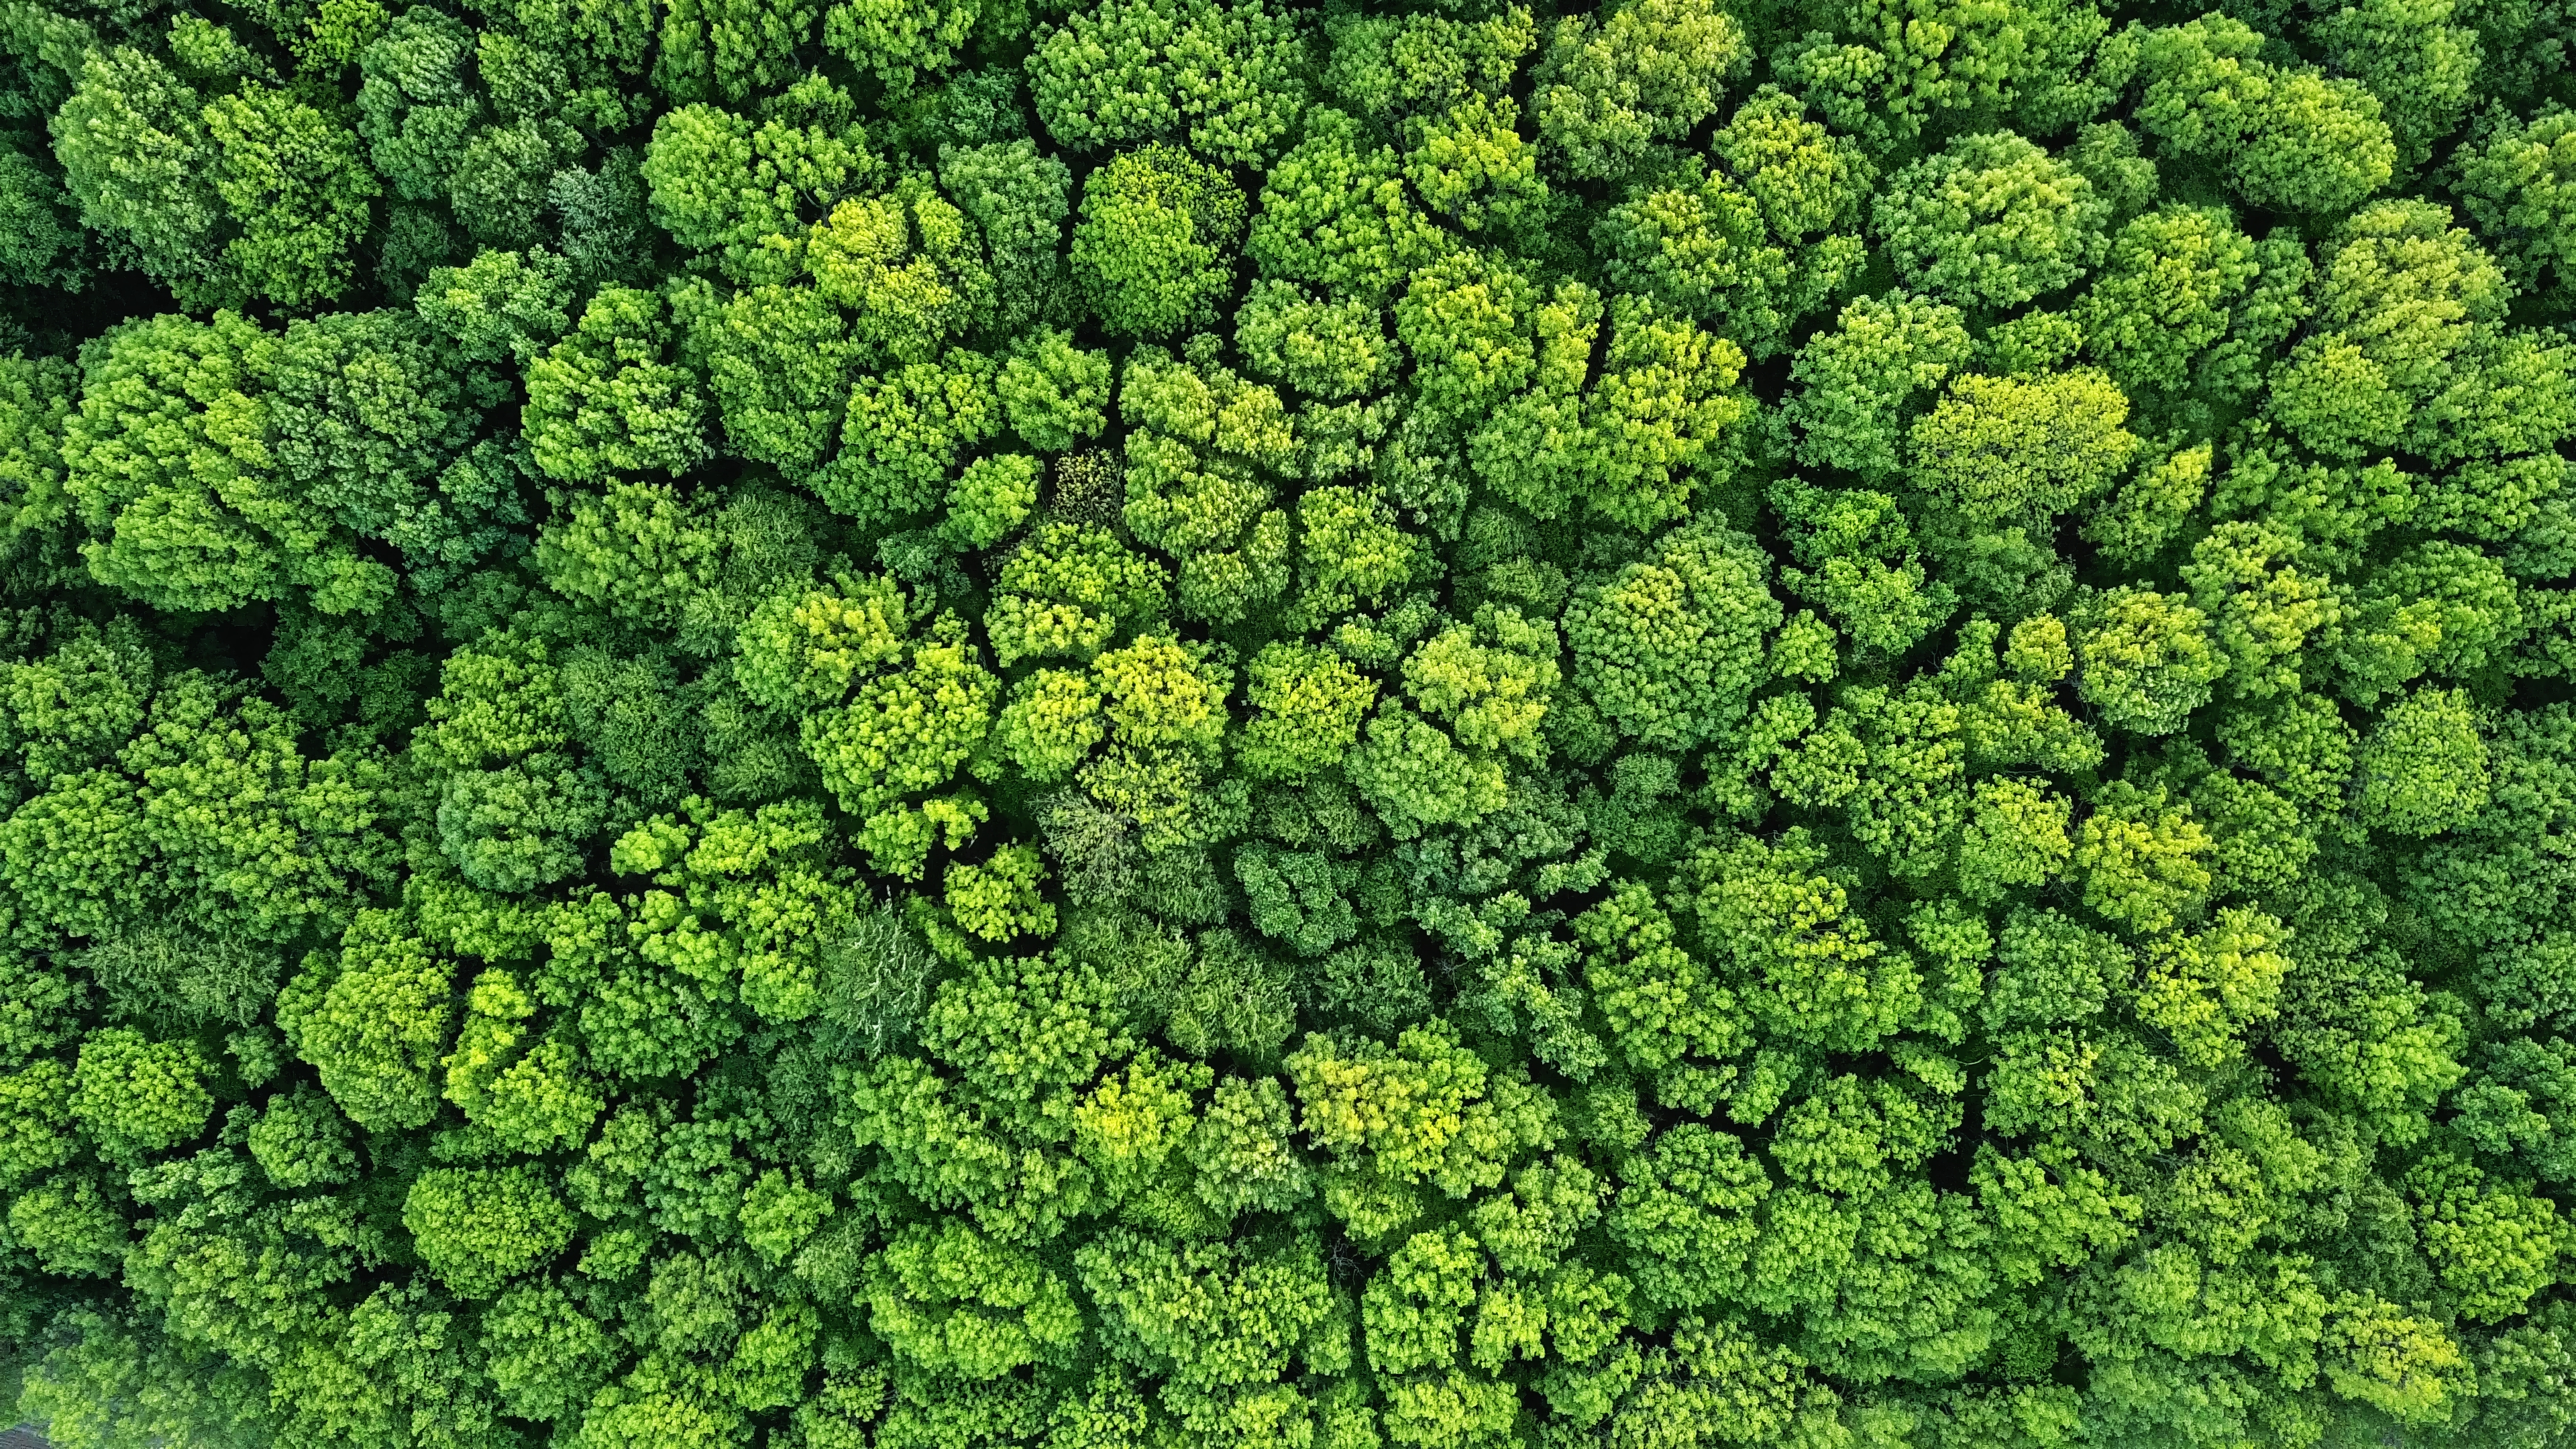 Top view of a young green forest